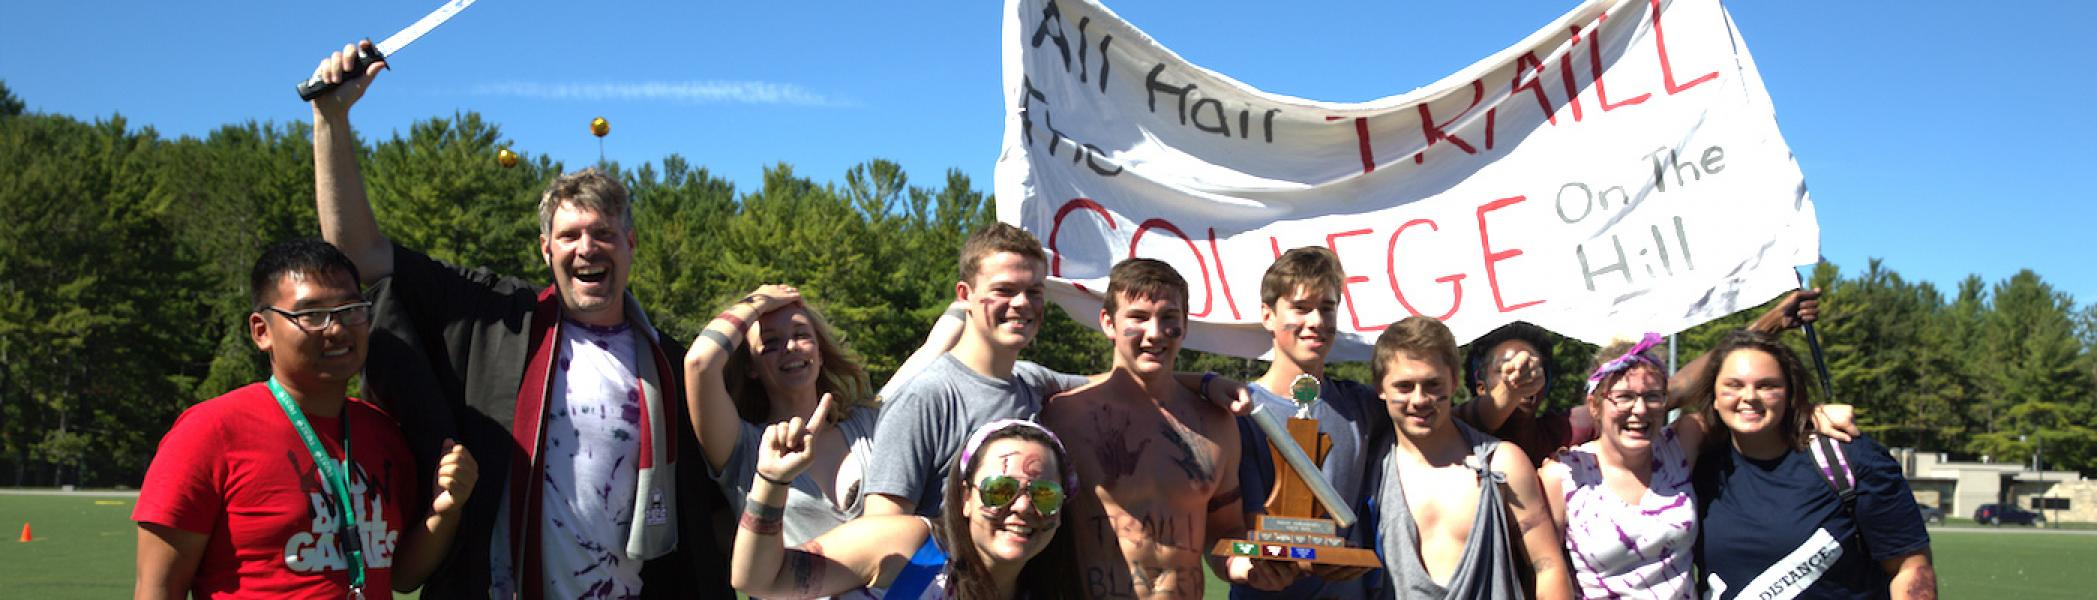 "A group of people smiling and holding up a sign that reads: ""All Hail Traill The College on the Hill"""